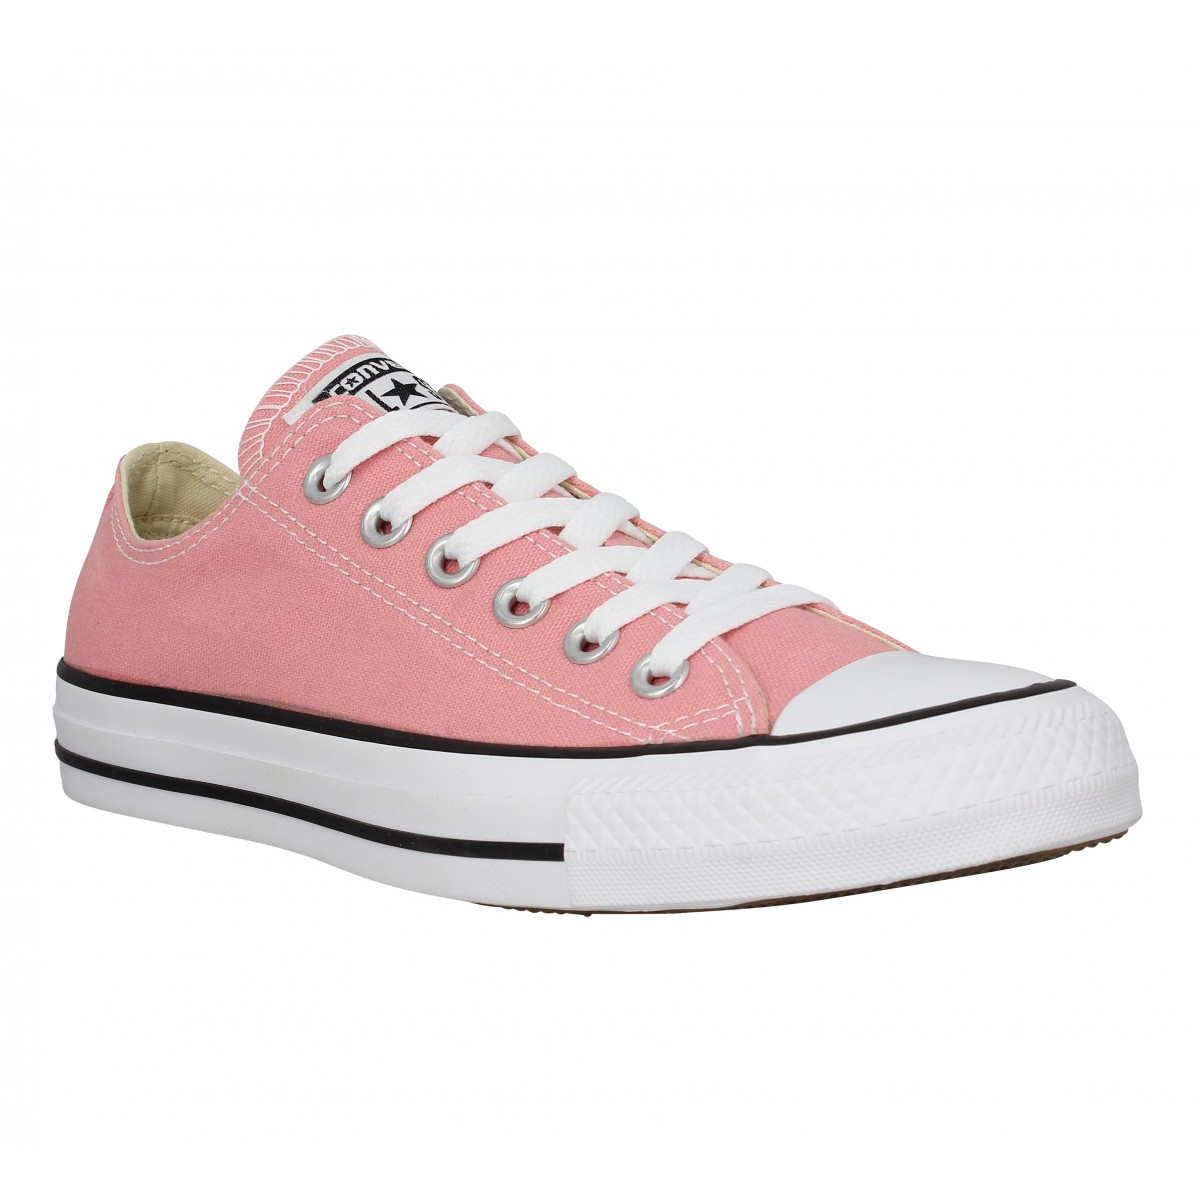 Baskets CONVERSE Chuck Taylor All Star toile Femme Pink